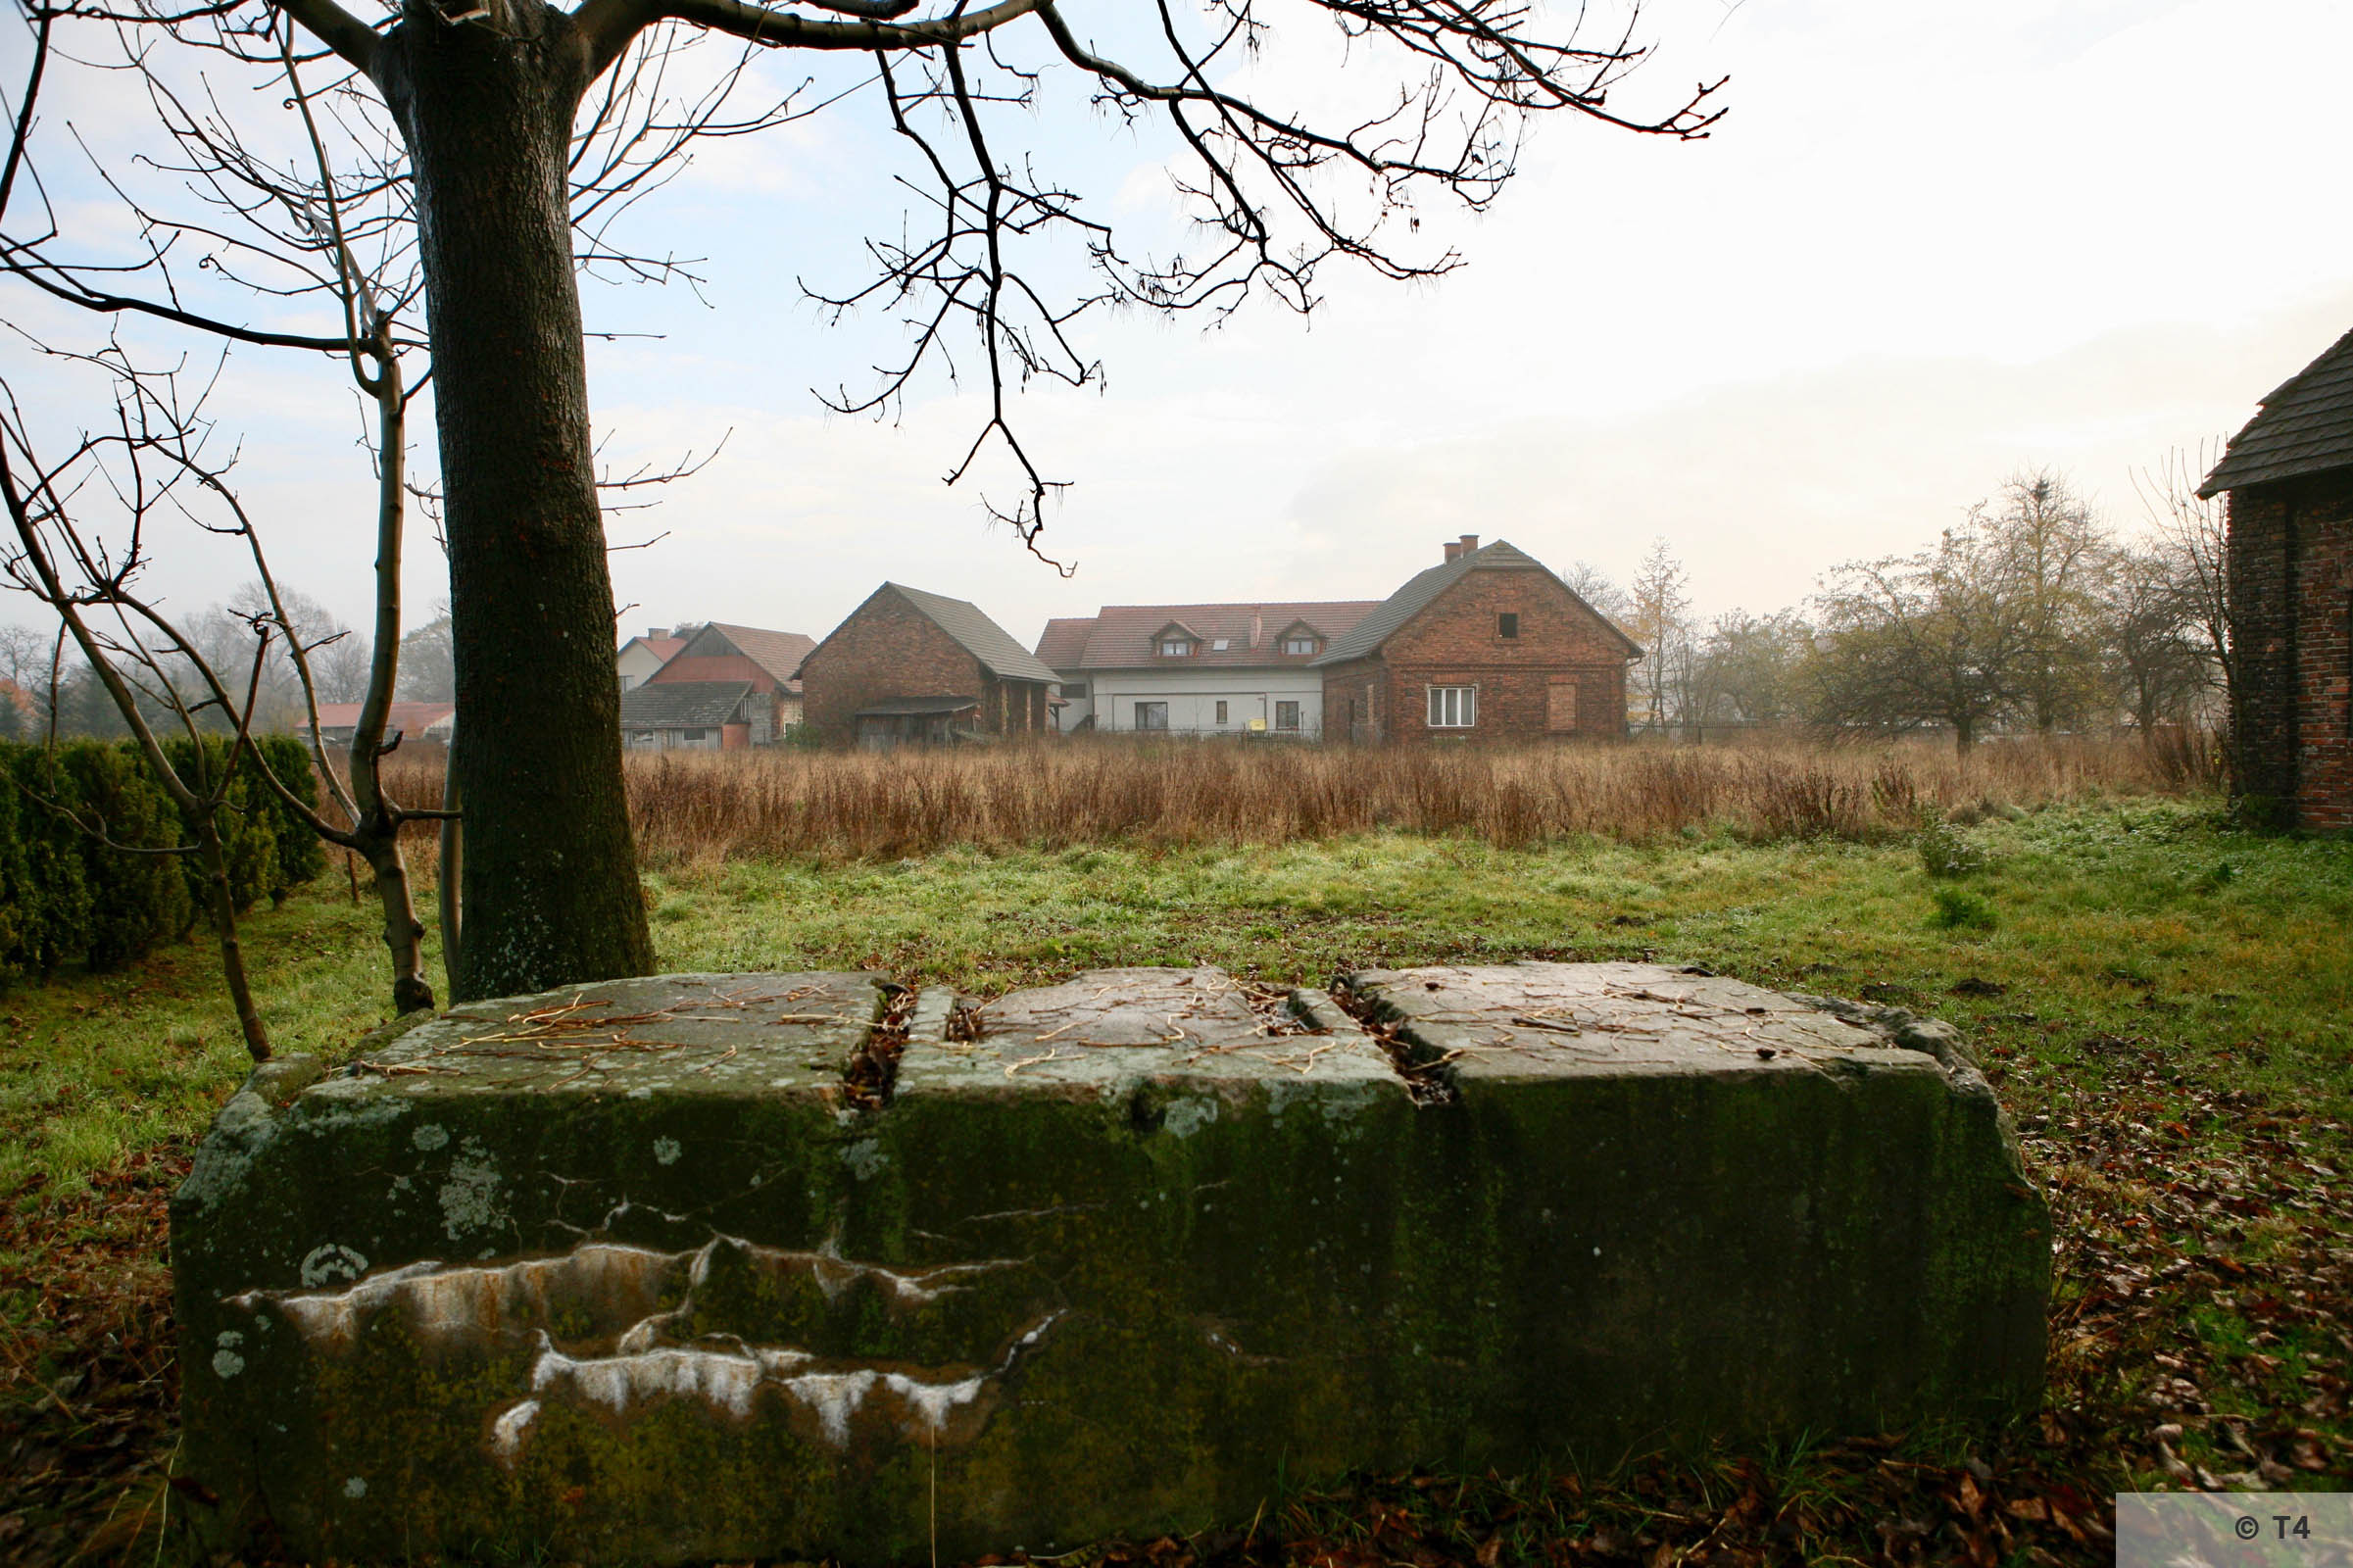 Area of the former sub camp. 2007 T4 2931